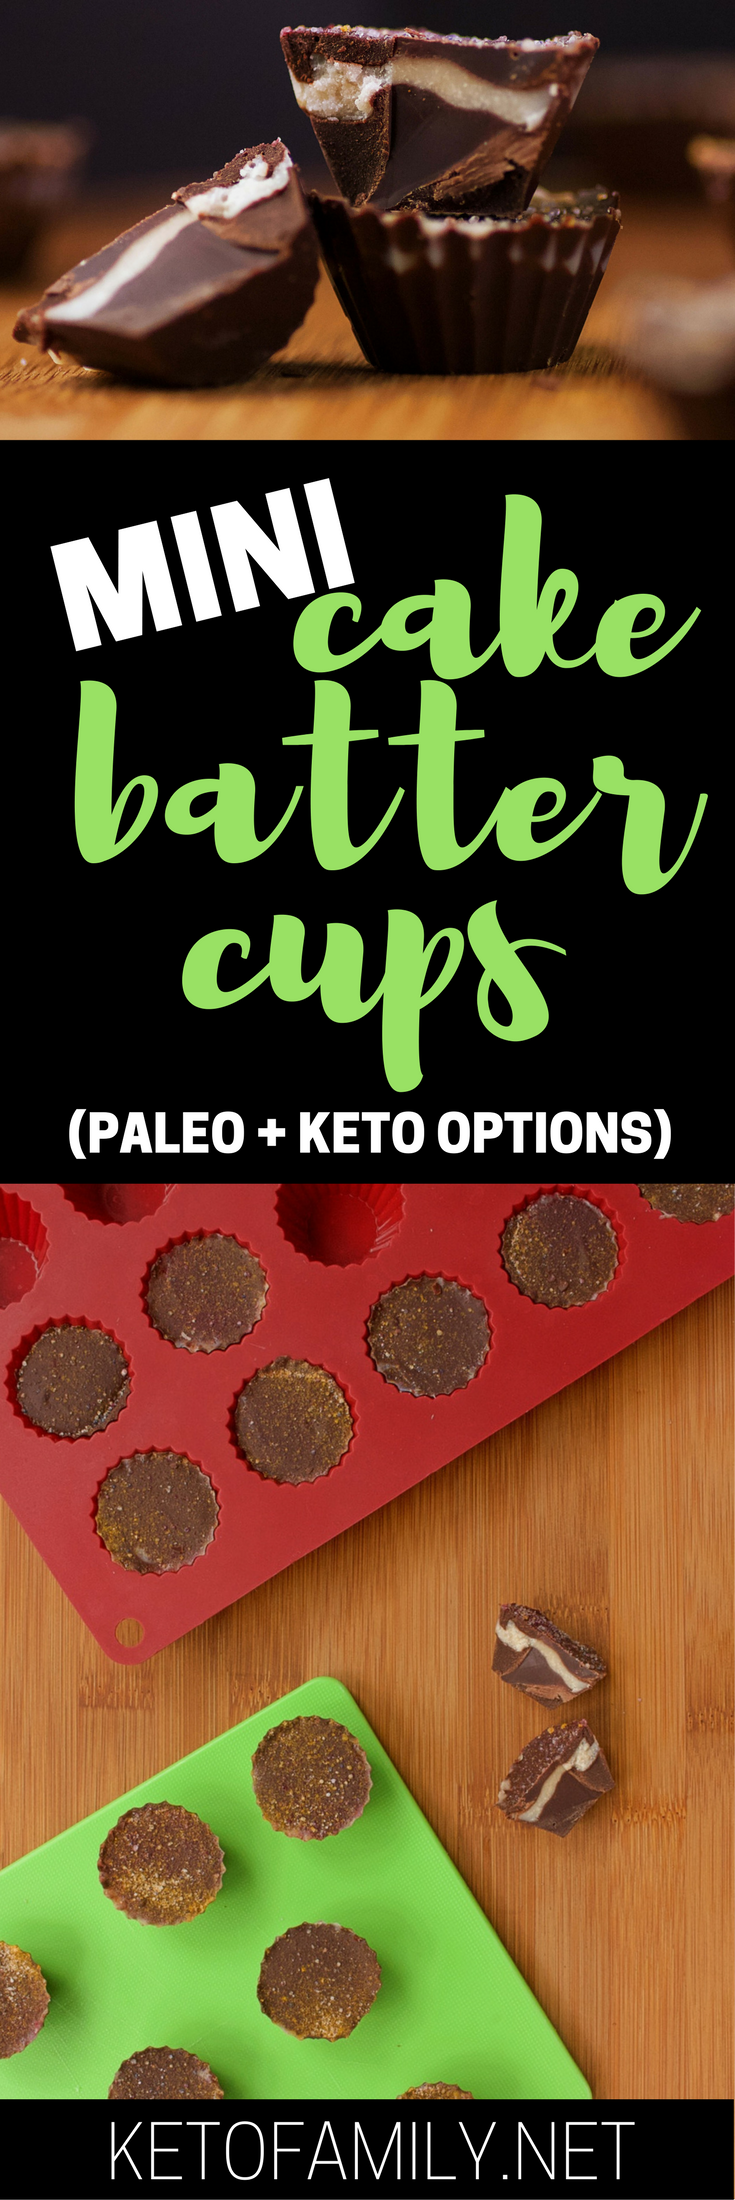 All the deliciousness of cake batter without the sugar--these Mini Cake Batter Cups pack smooth vanilla flavor into a chocolatey shell. (Keto and Paleo options available)